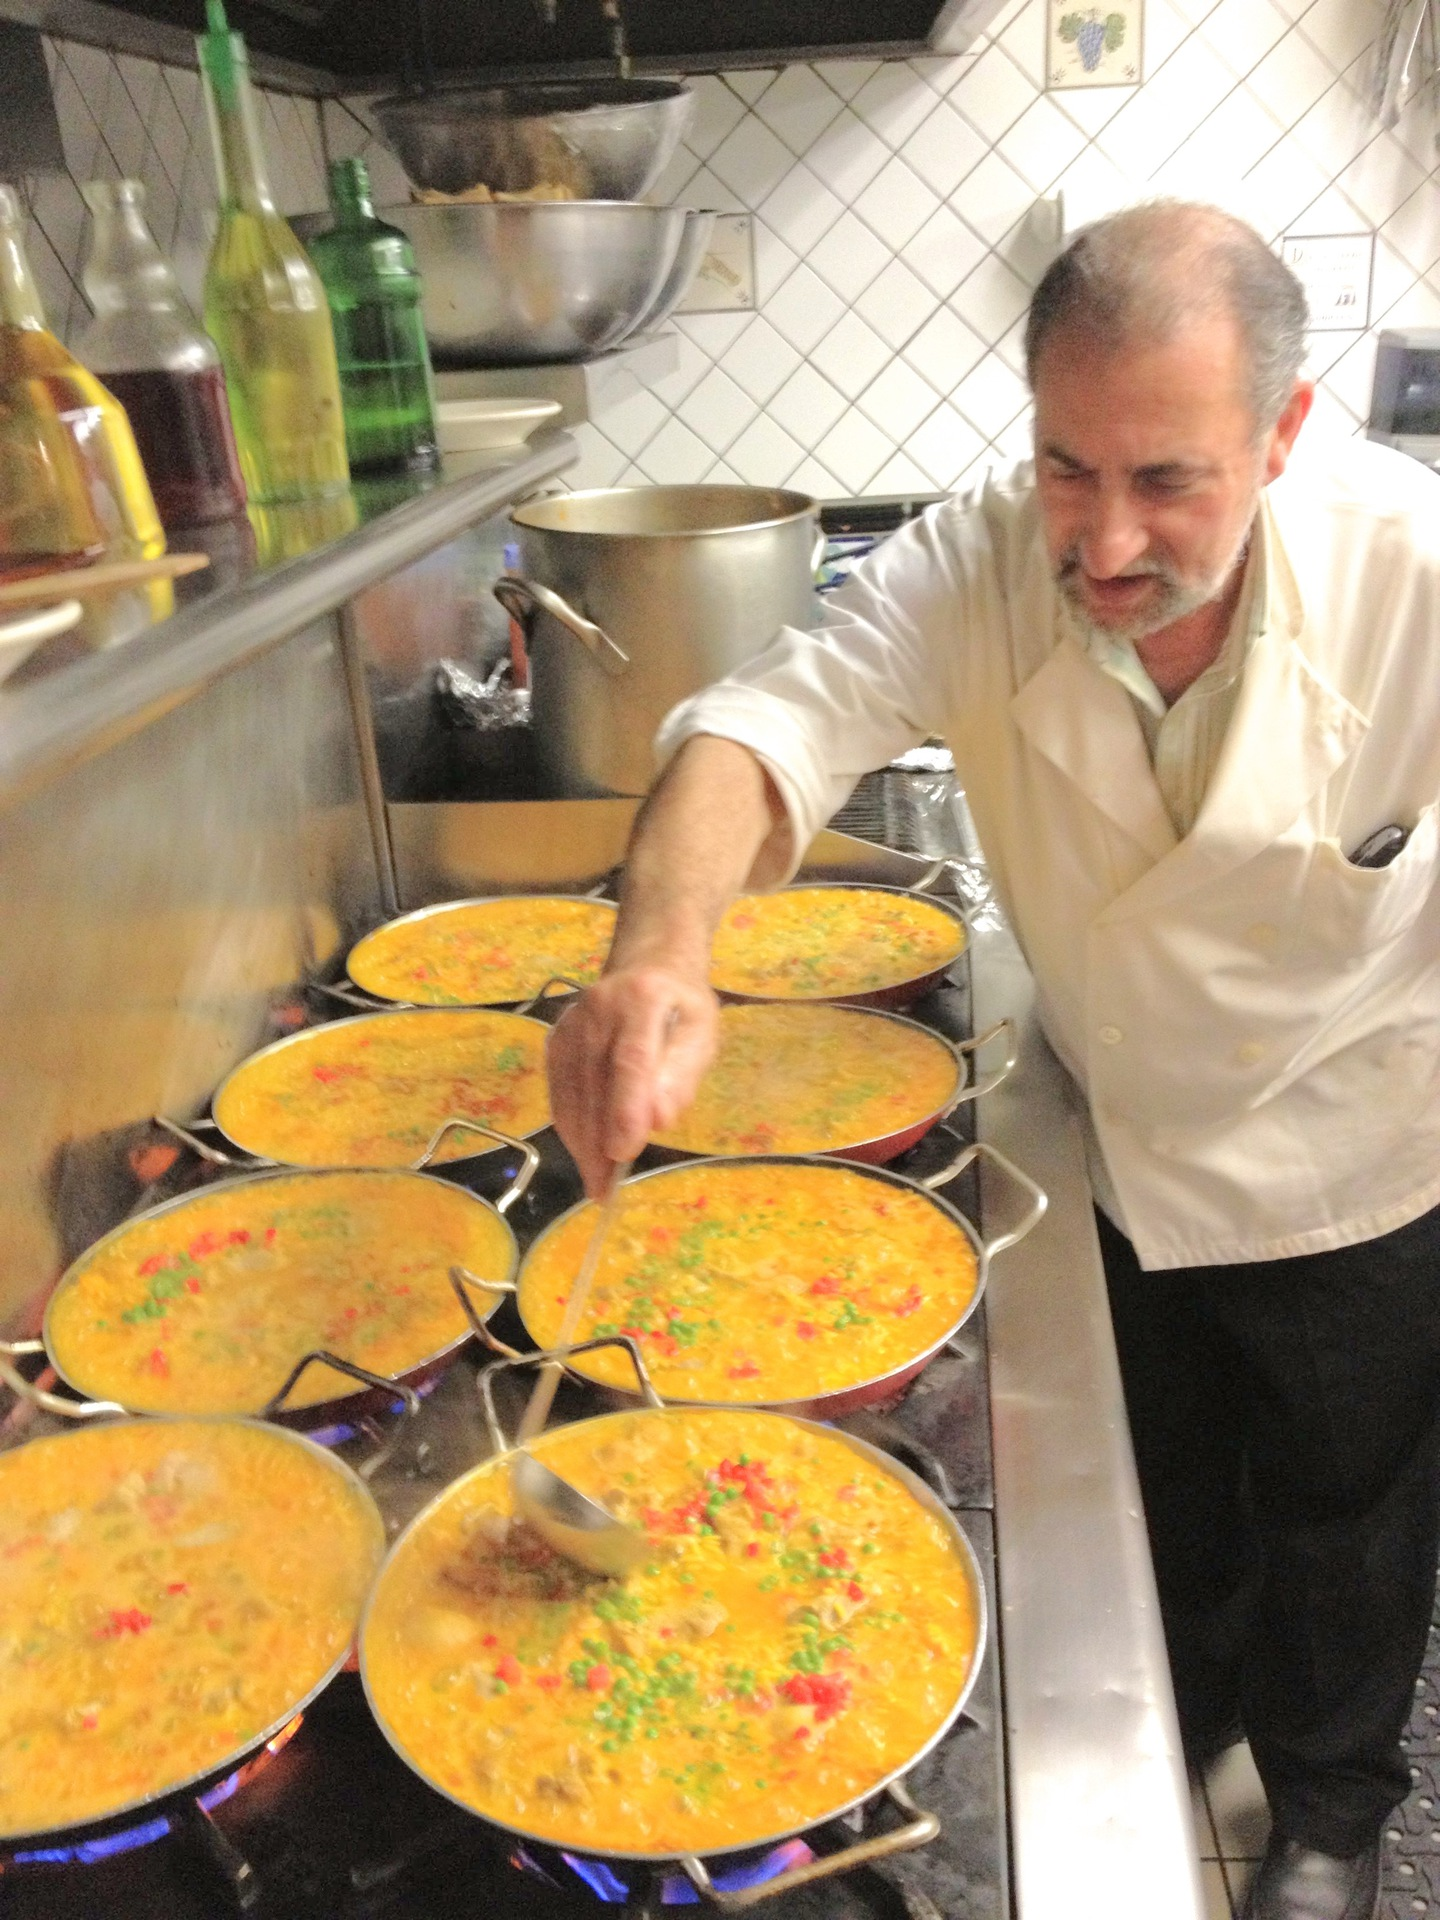 Chef Carlos preparing paellas